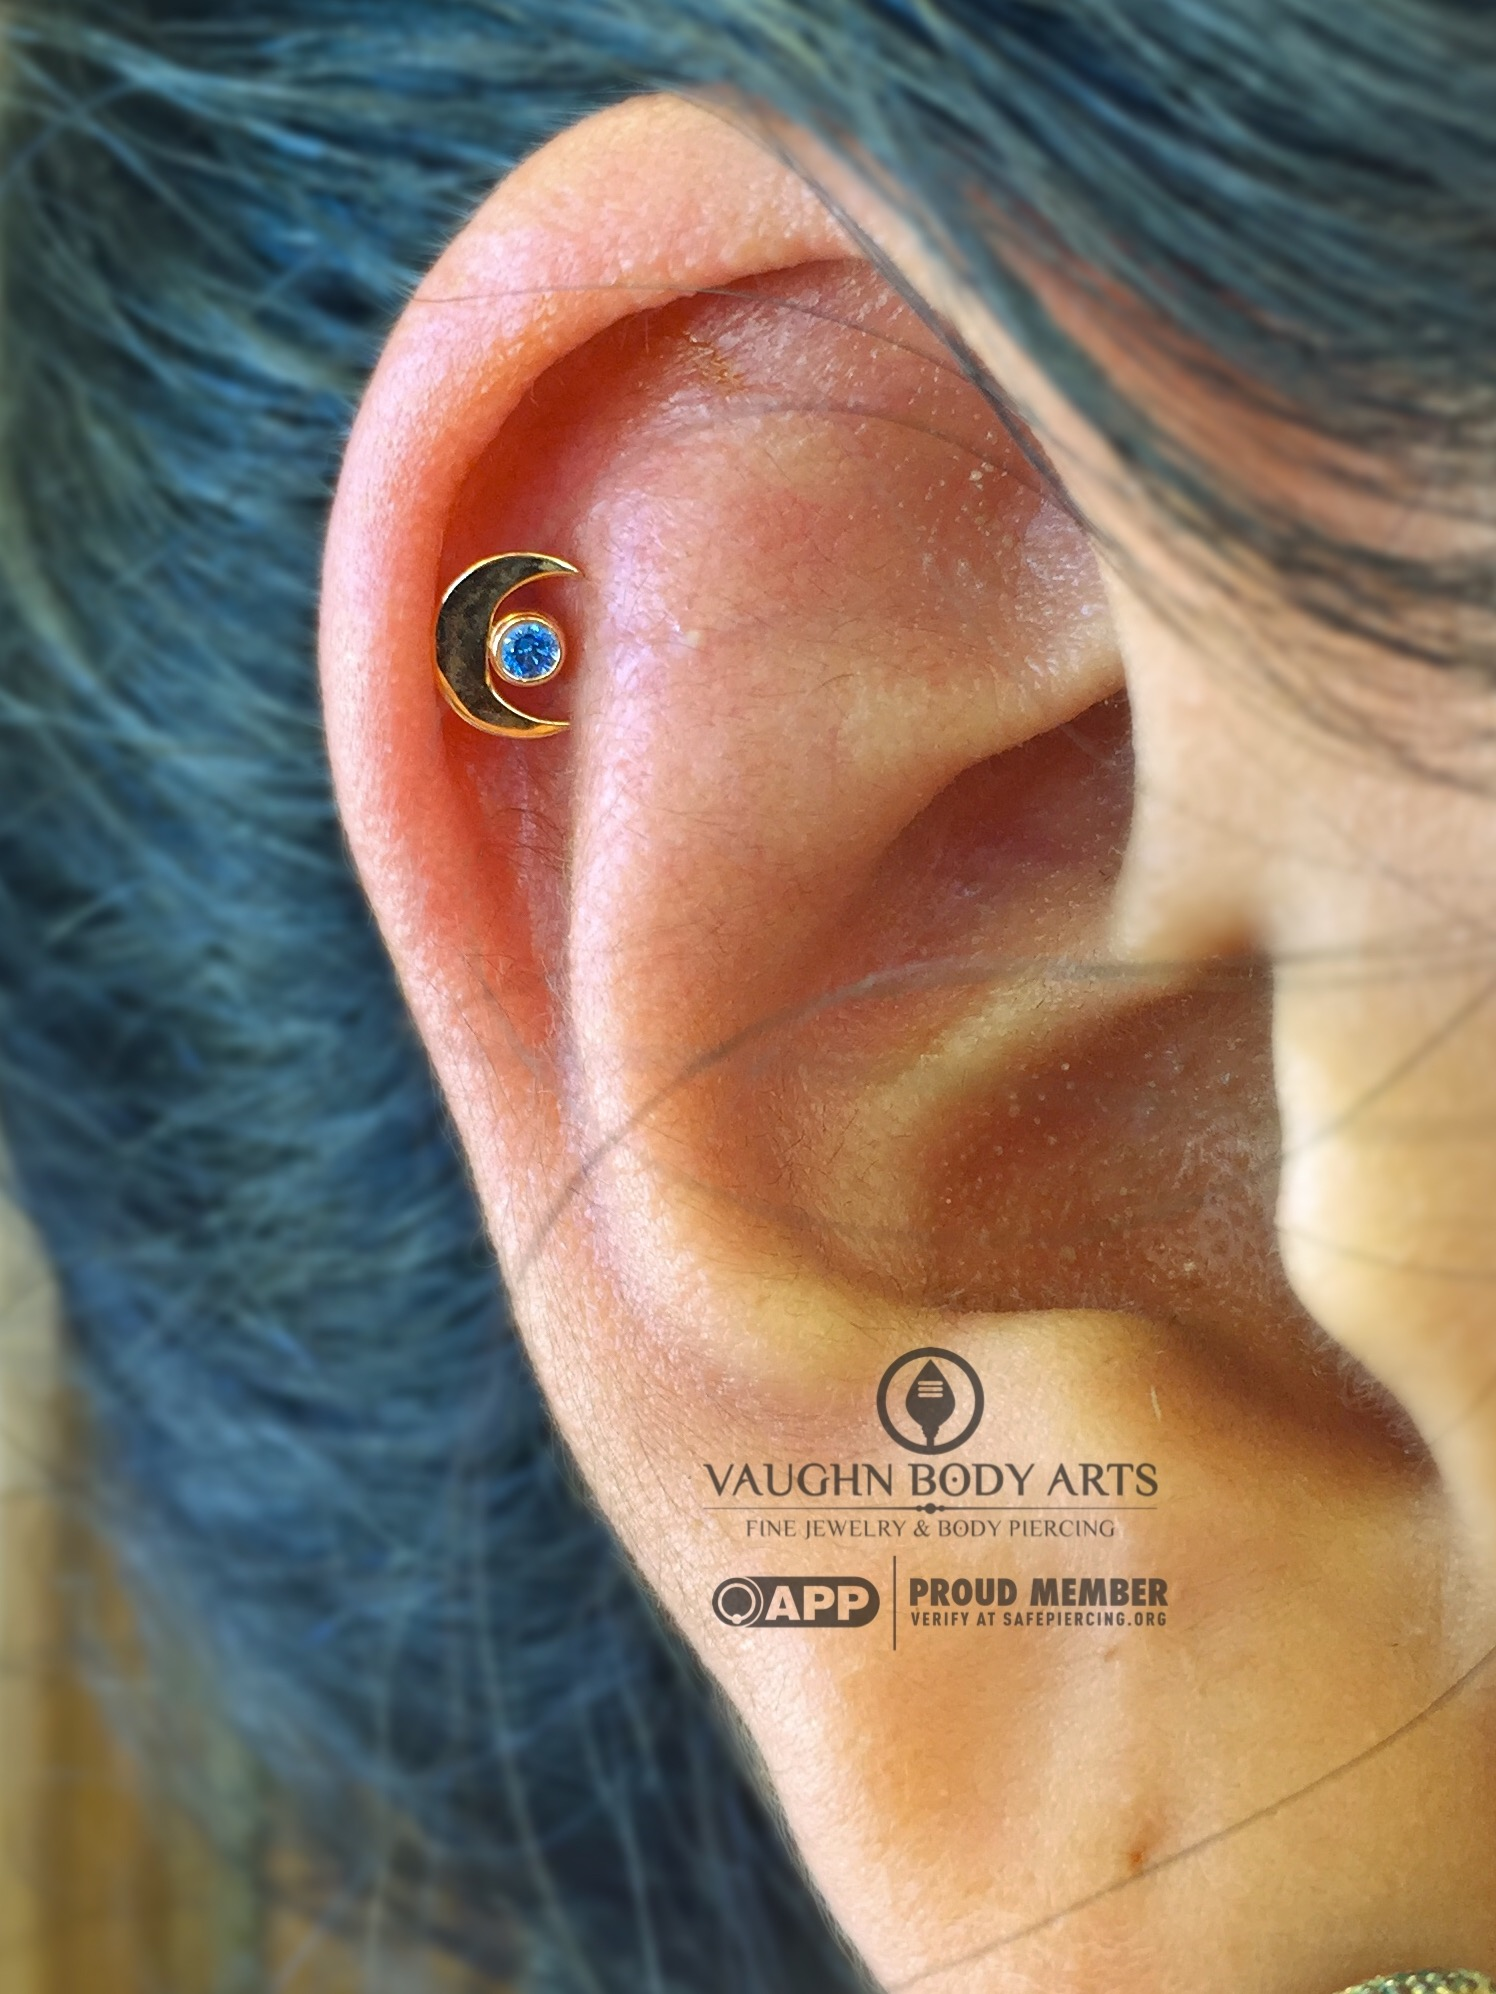 Helix piercing with an 18k yellow gold crescent moon end from Anatometal.